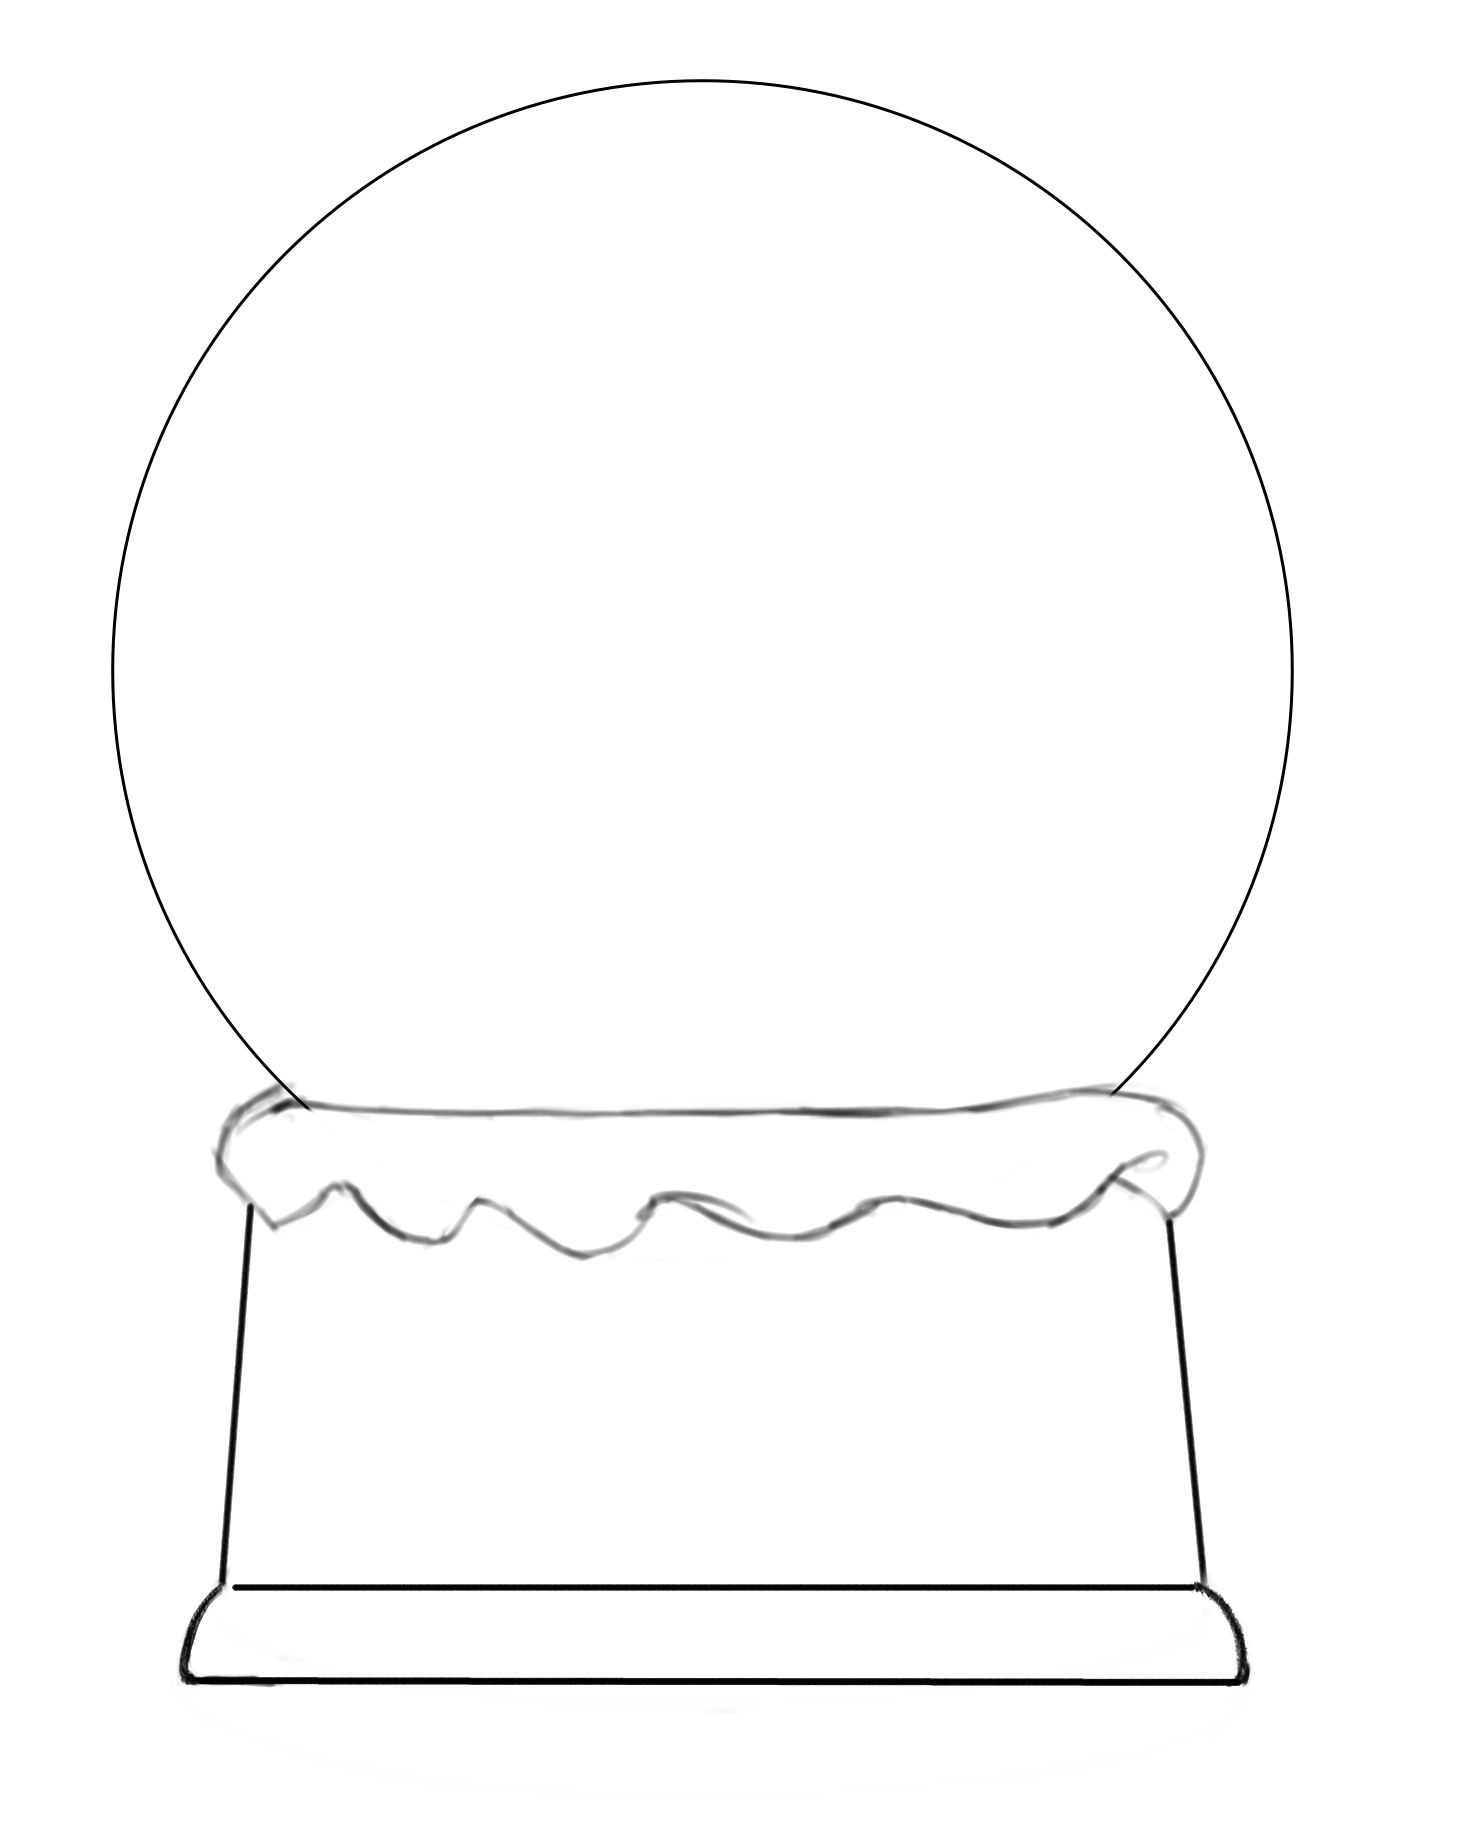 Printable Snow Globe Shape Template | Coloring Page